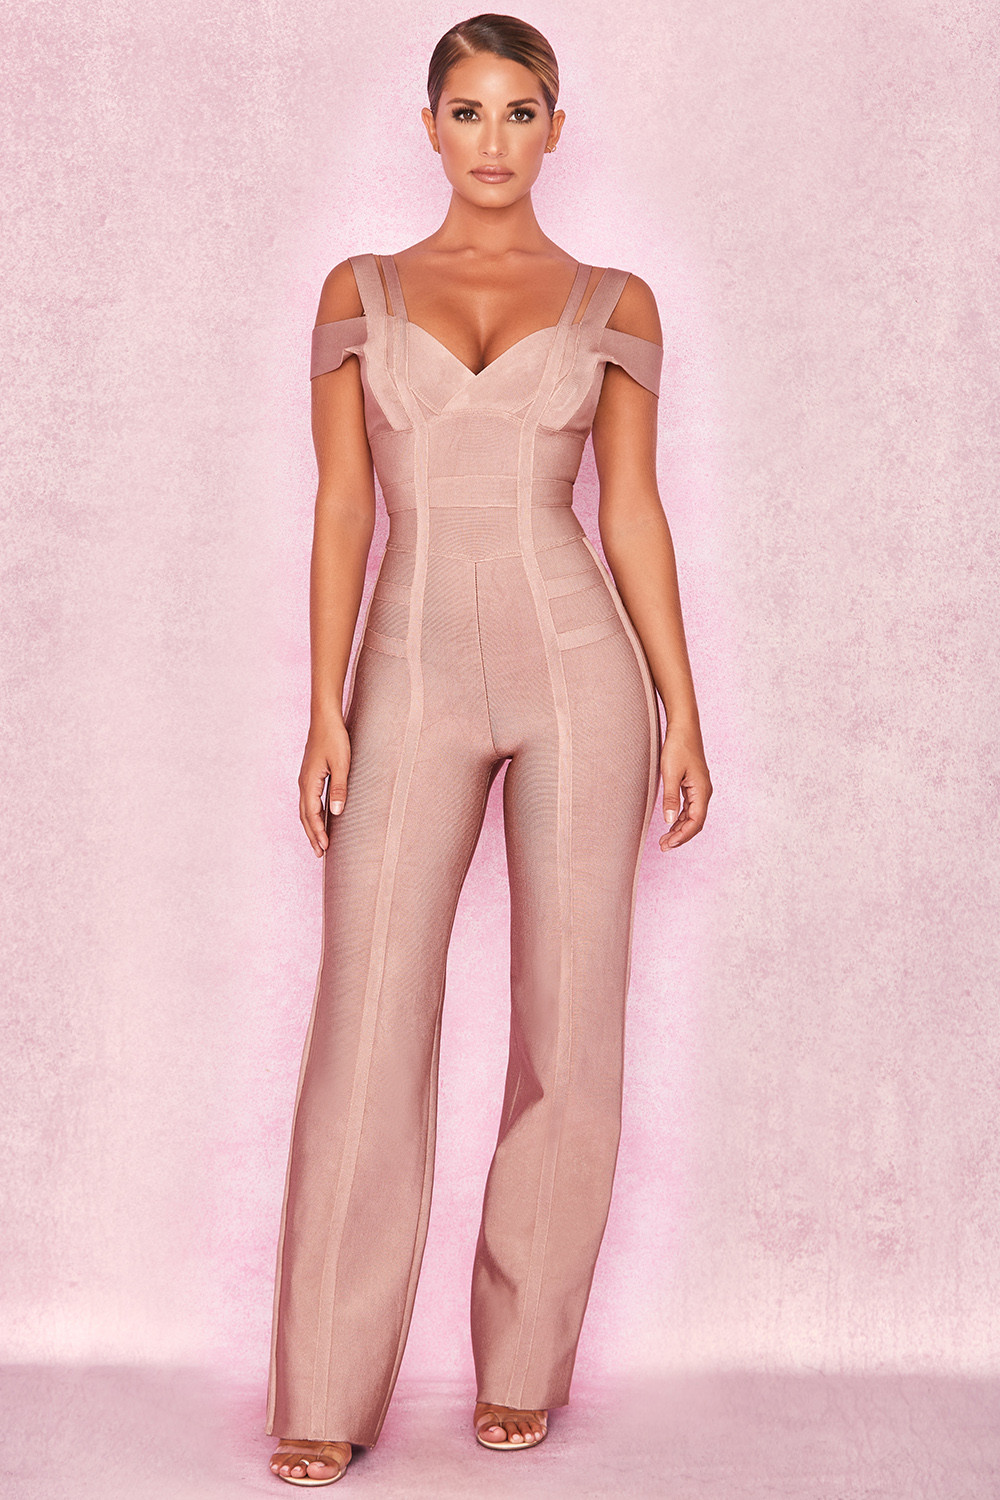 a6a90437e442 Clothing   Jumpsuits    Mimosa  Taupe Bandage Multi Strap Jumpsuit